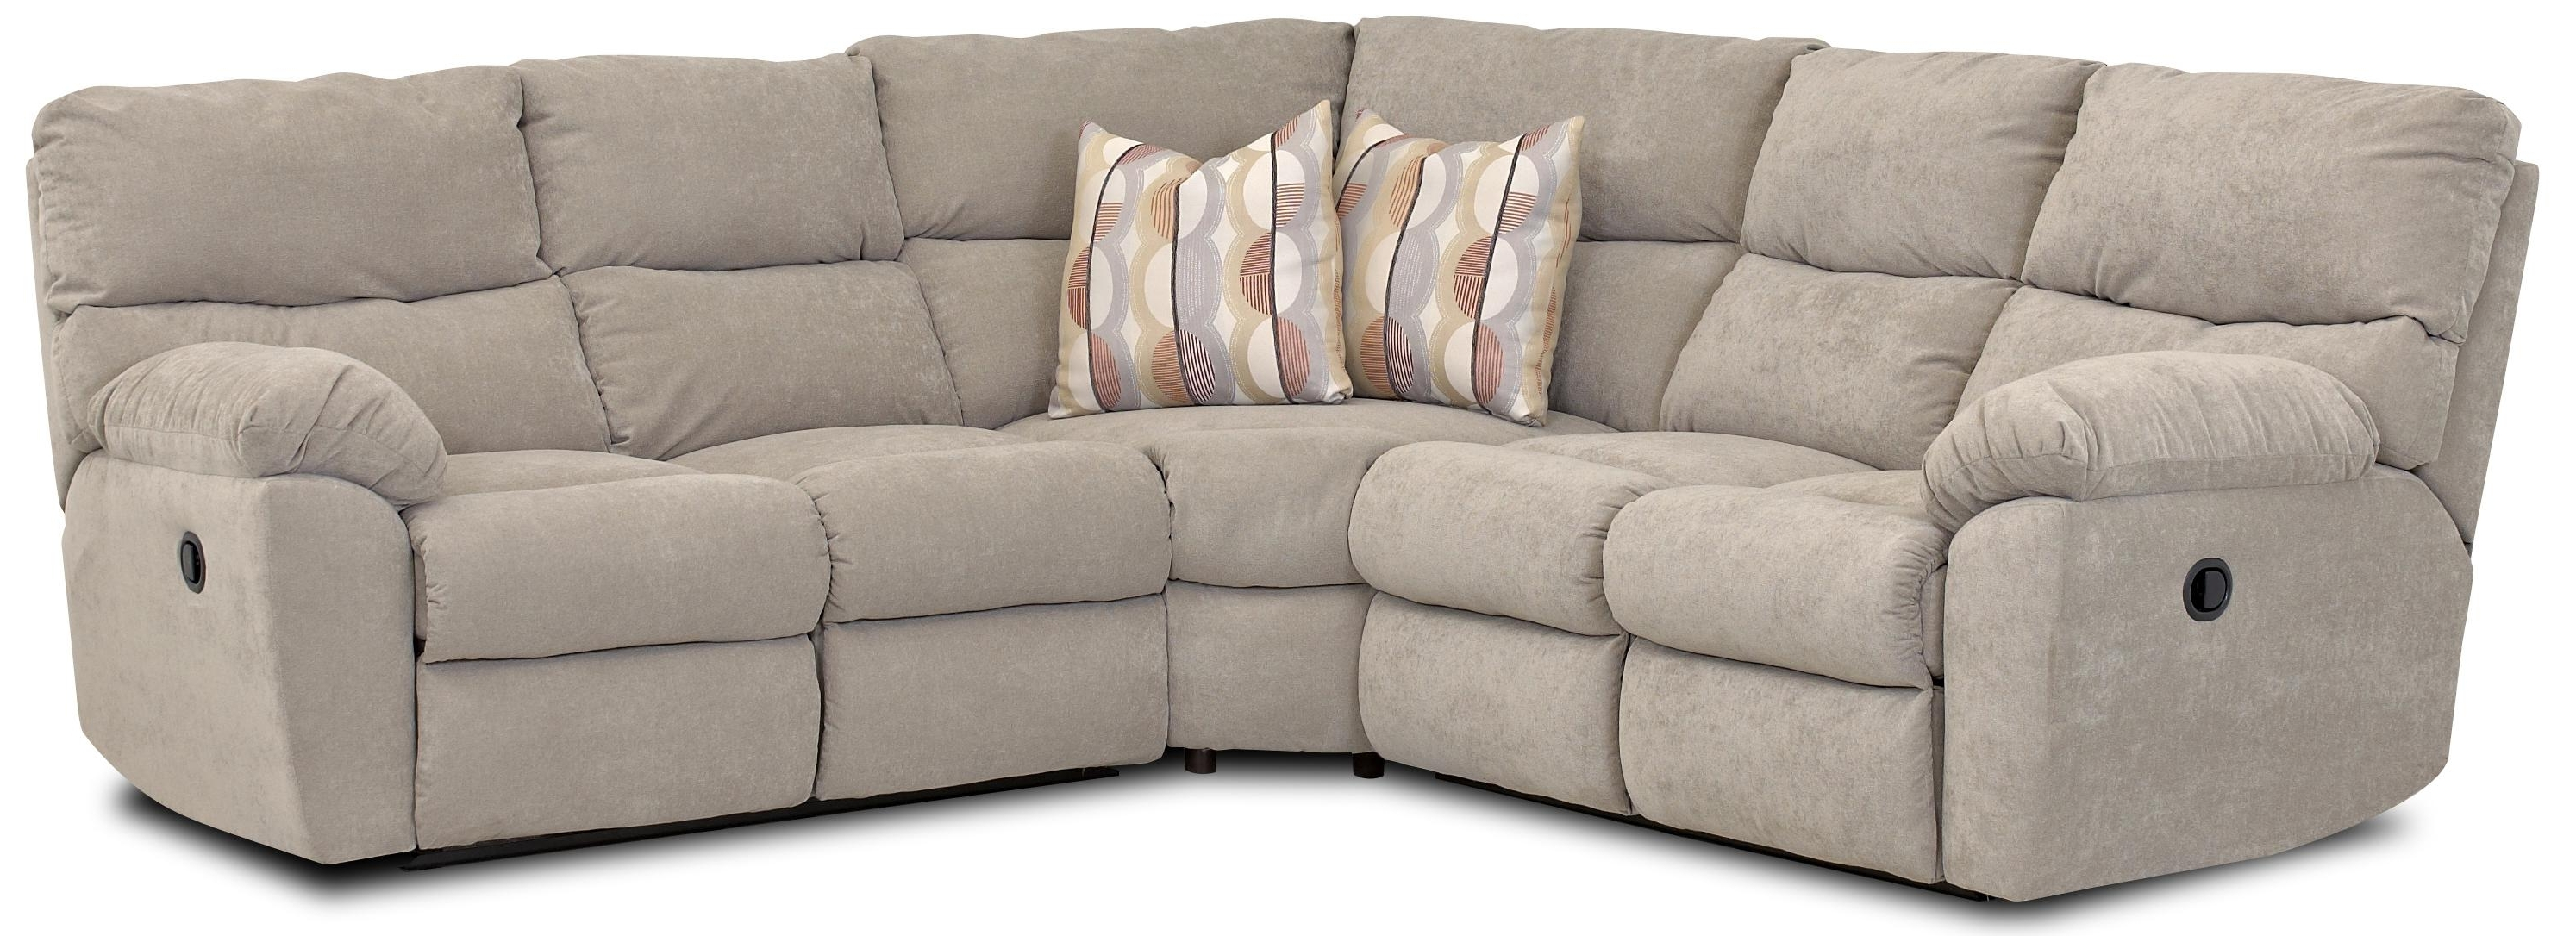 Latest Johnny Janosik Sectional Sofas In Klaussner Odessa Casual Power Reclining Sectional With Accent (View 12 of 15)